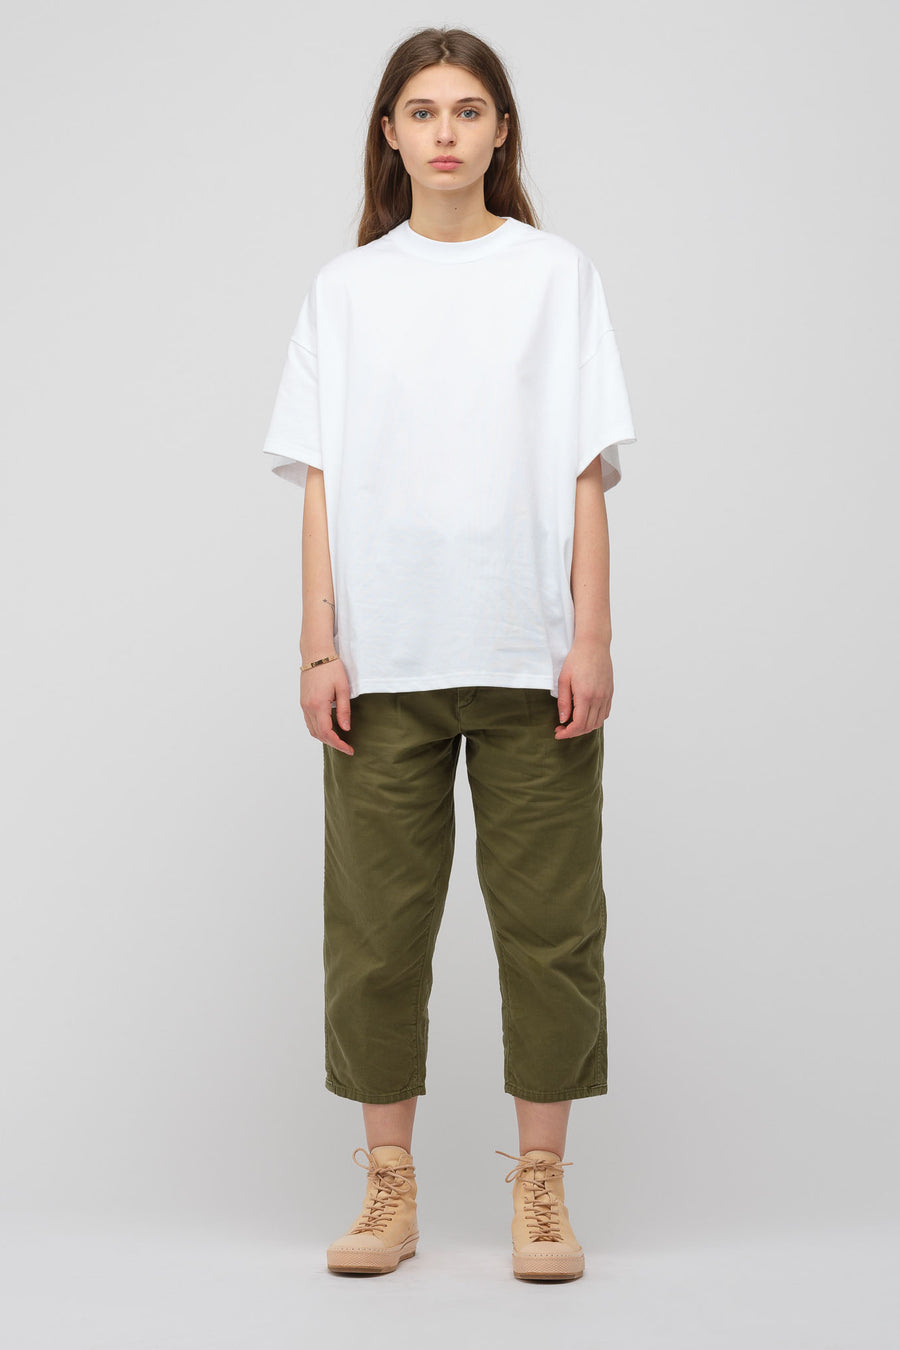 Chimala Loose Backsatin Silk Touch Farmer's Work Pant in Khaki Green - Notre